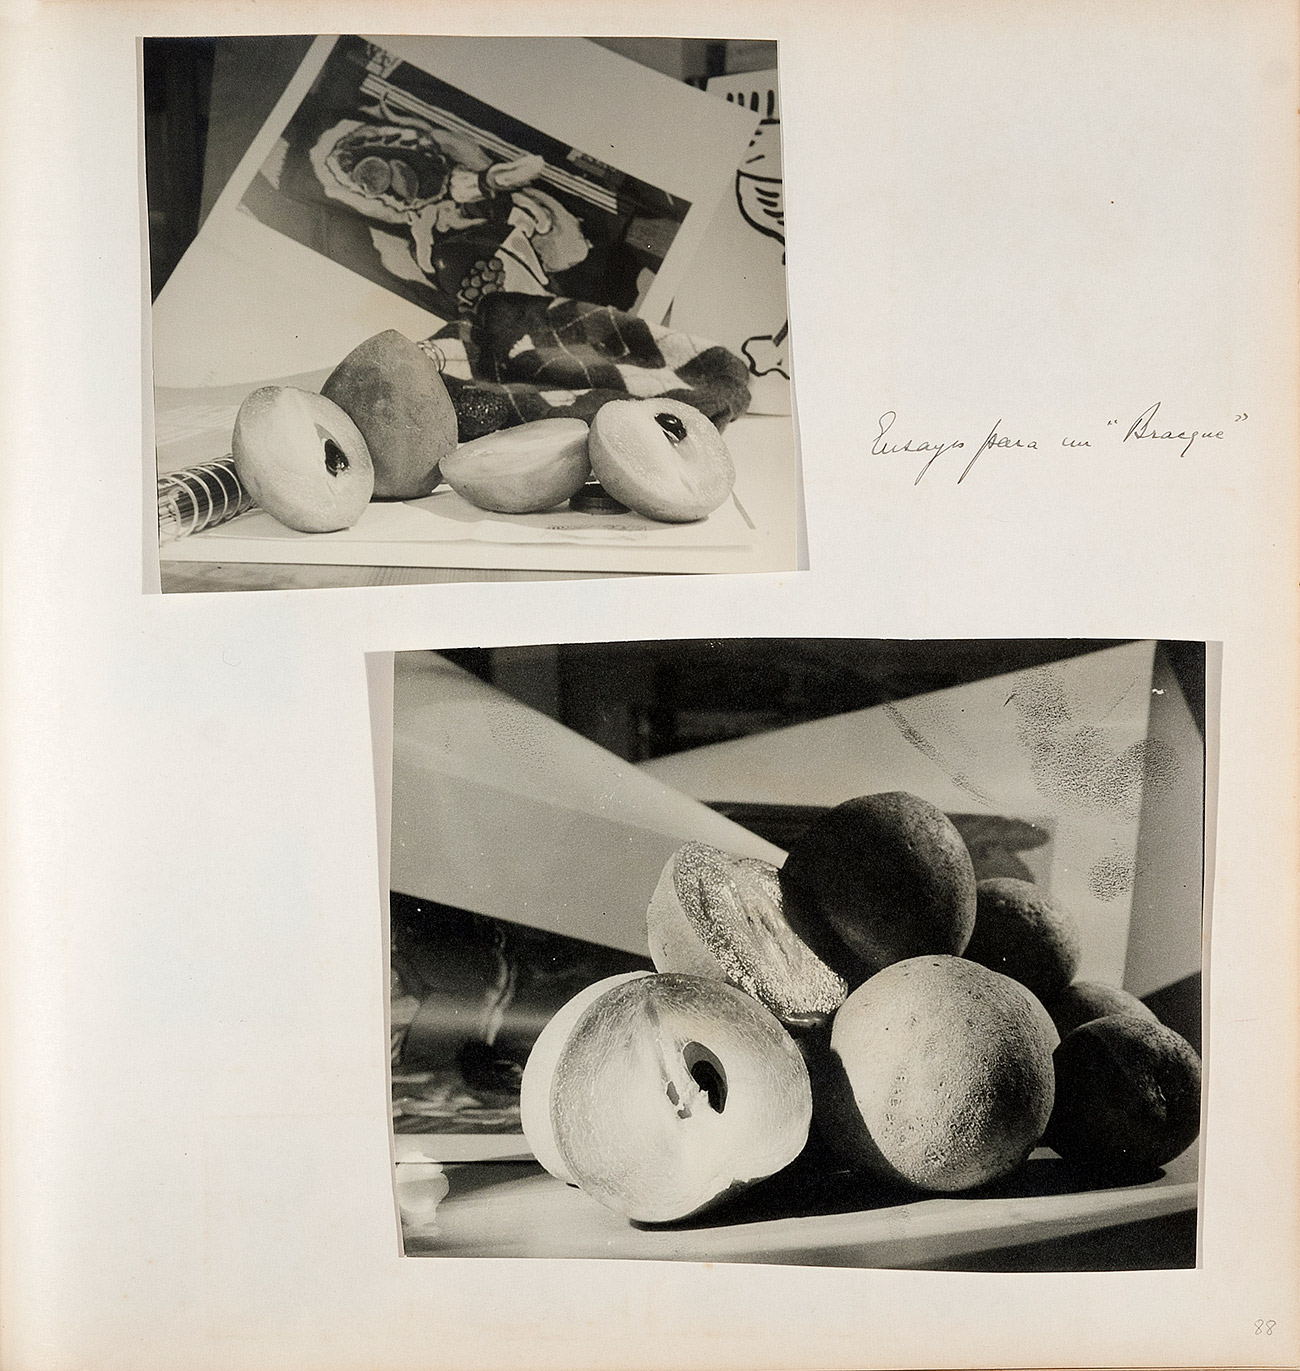 Two black and white images of cut fruit sitting on an open notebook